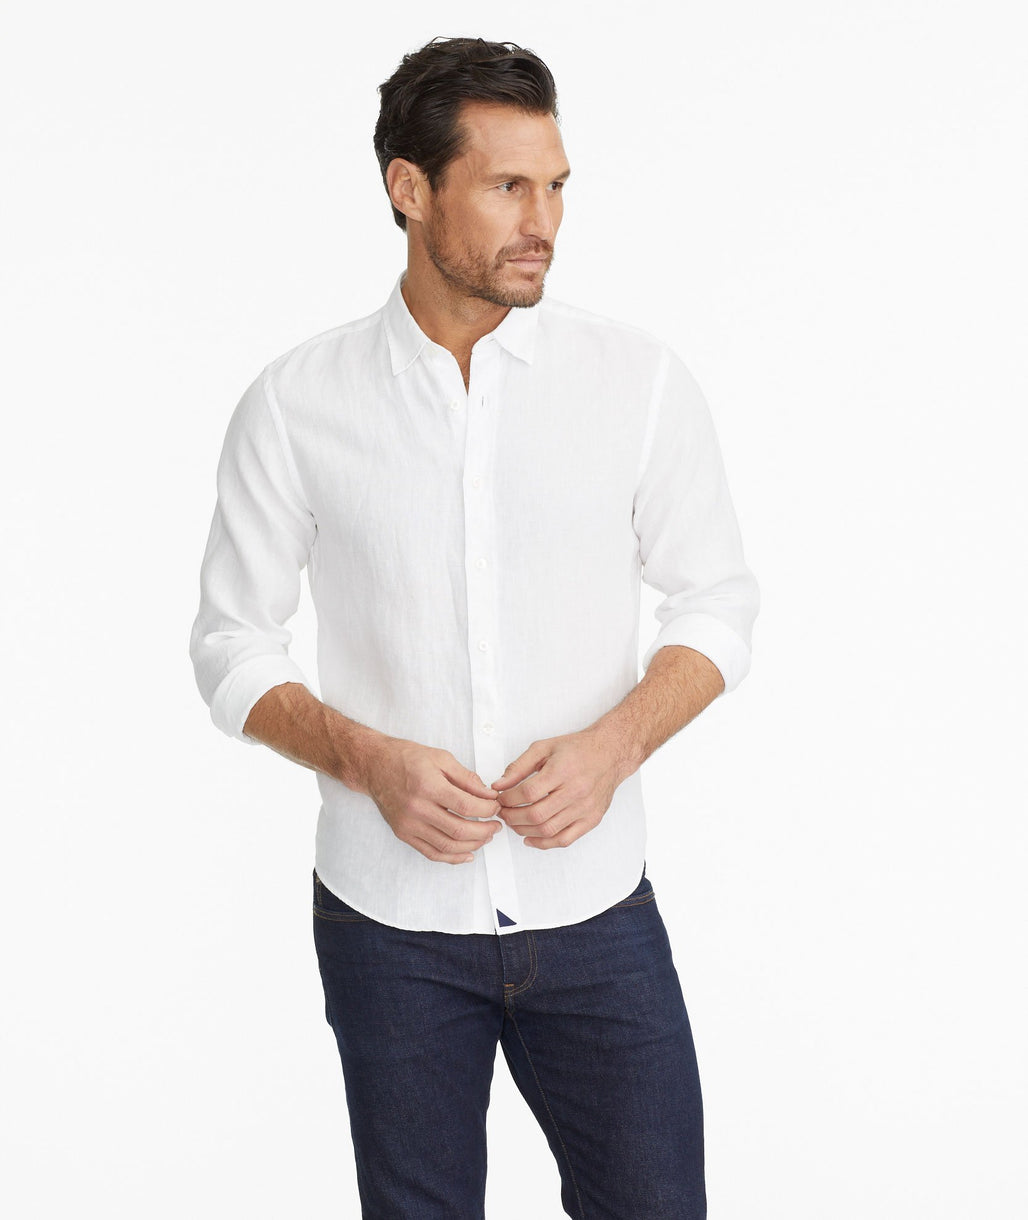 Model wearing a White Wrinkle-Resistant Linen Crianza Shirt